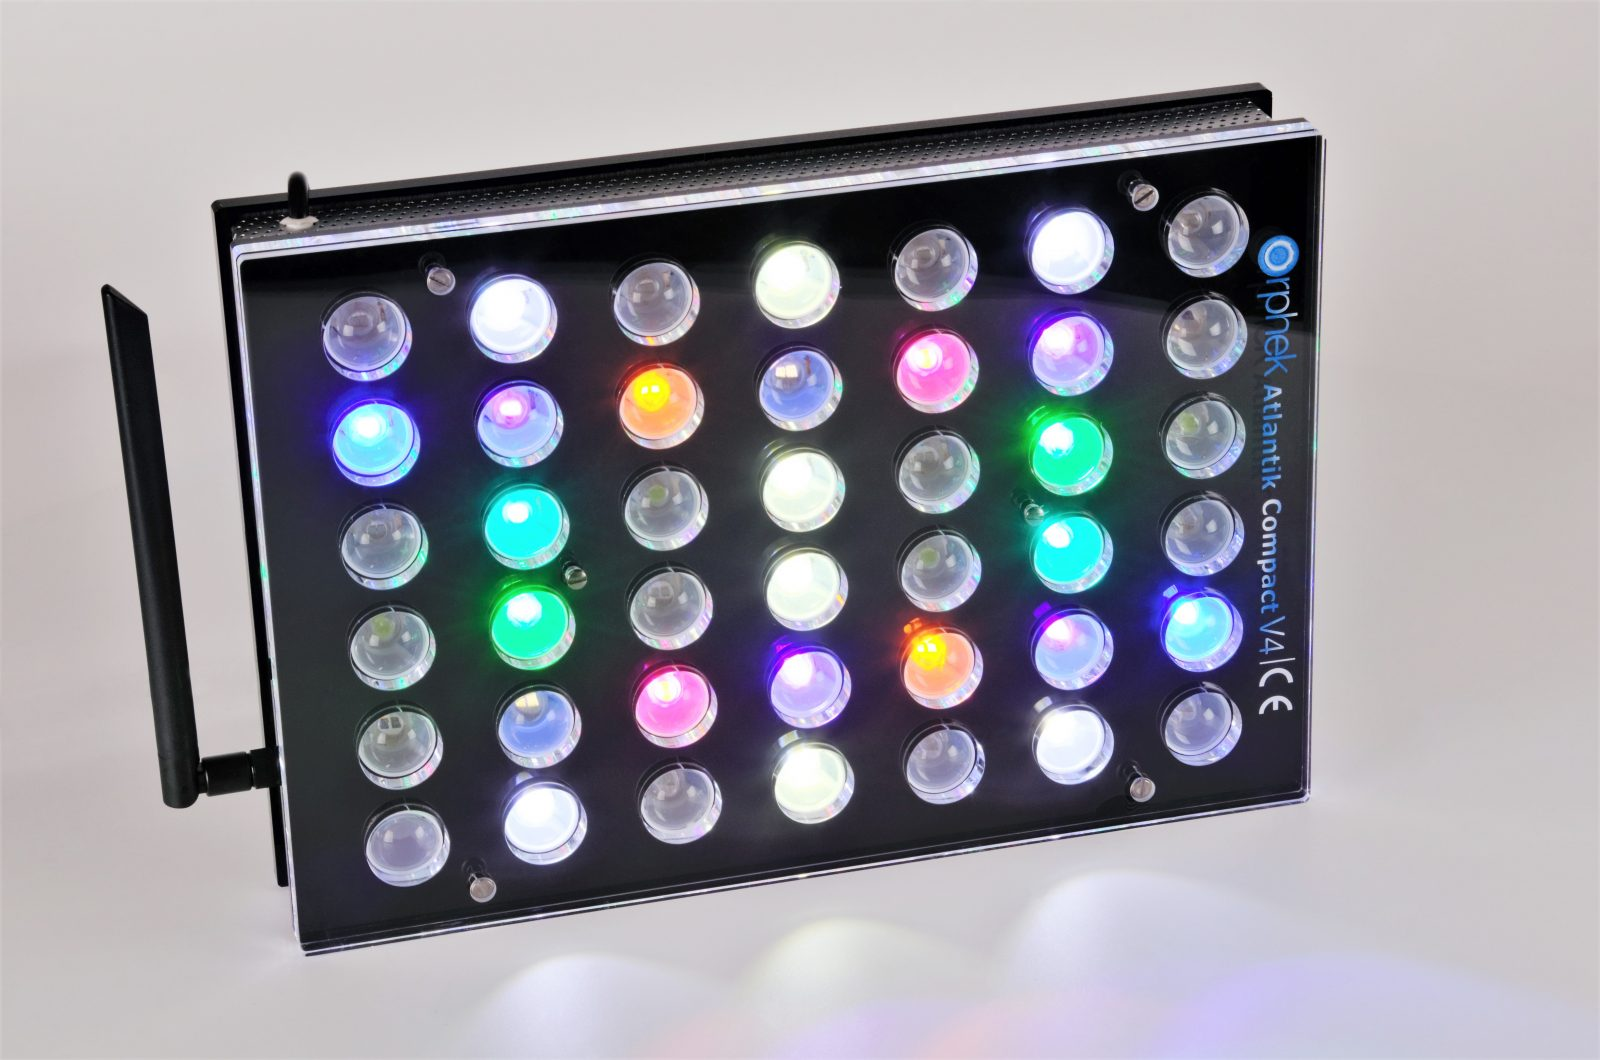 Orphek Aquarium LED Lighting Atlantik Compact V4 lig op kanaal 1 + 3 + 4